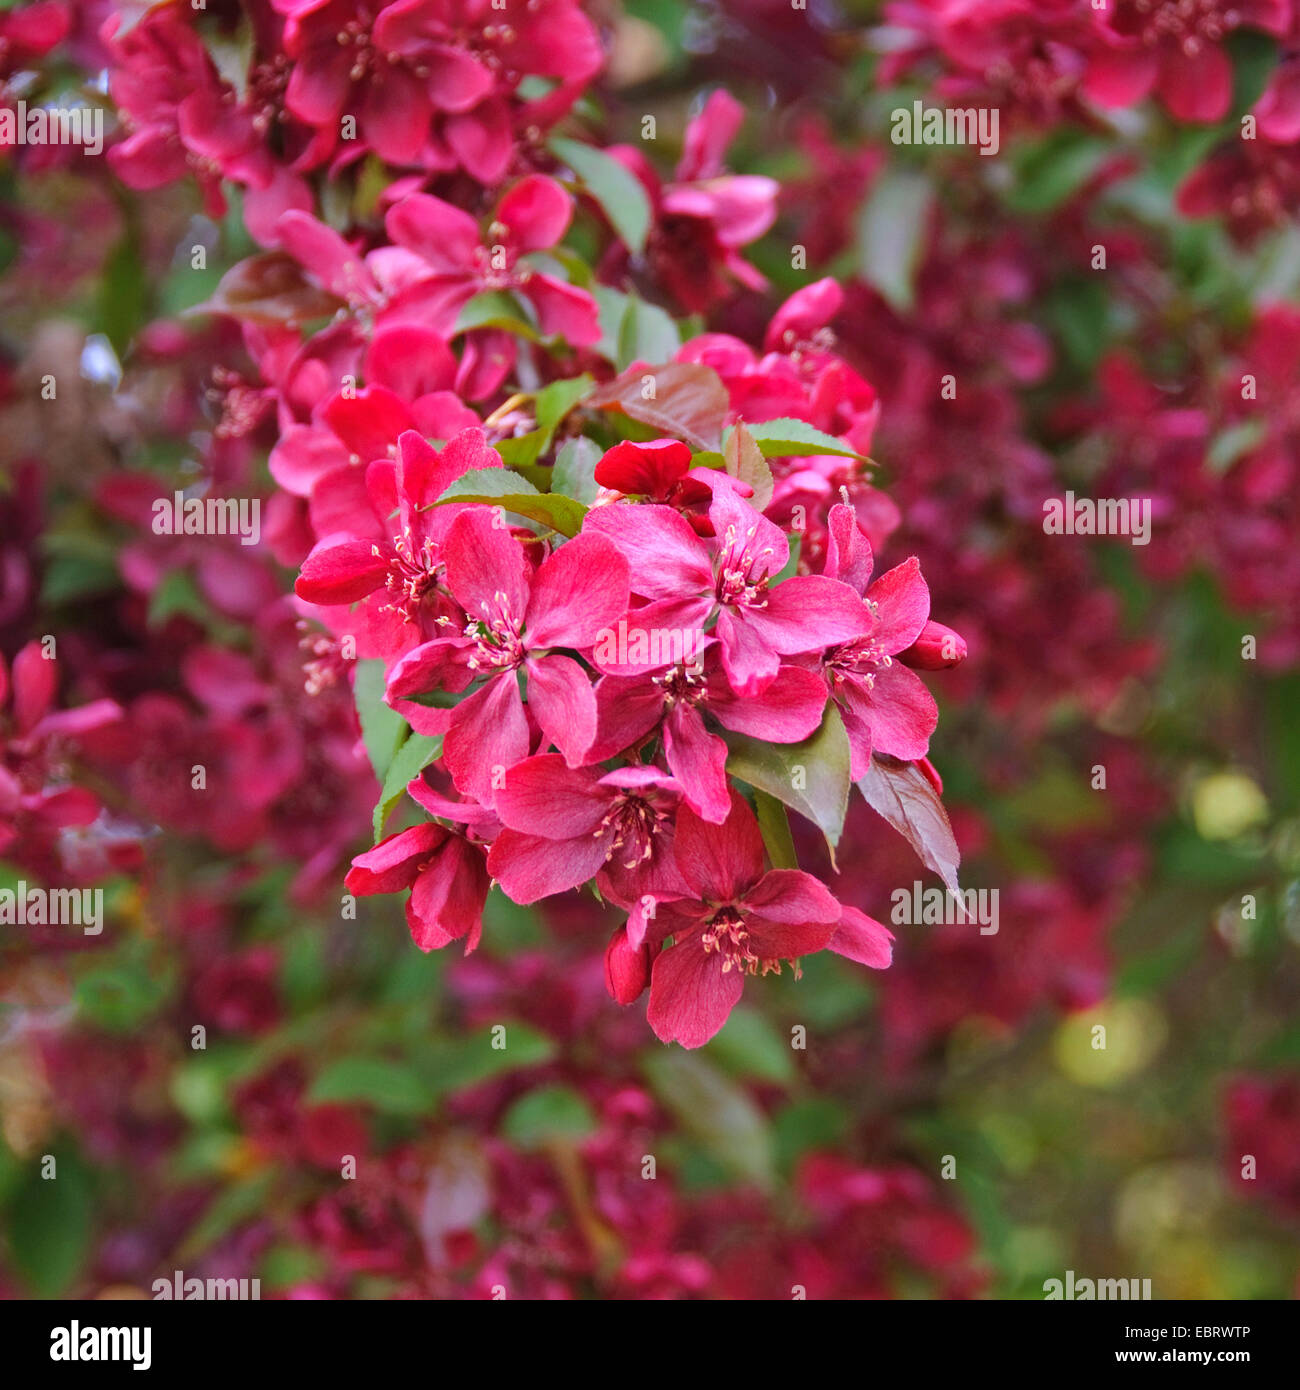 Adams Crabapple (Malus 'Royalty', Malus Royalty), cultivar Royalty - Stock Image